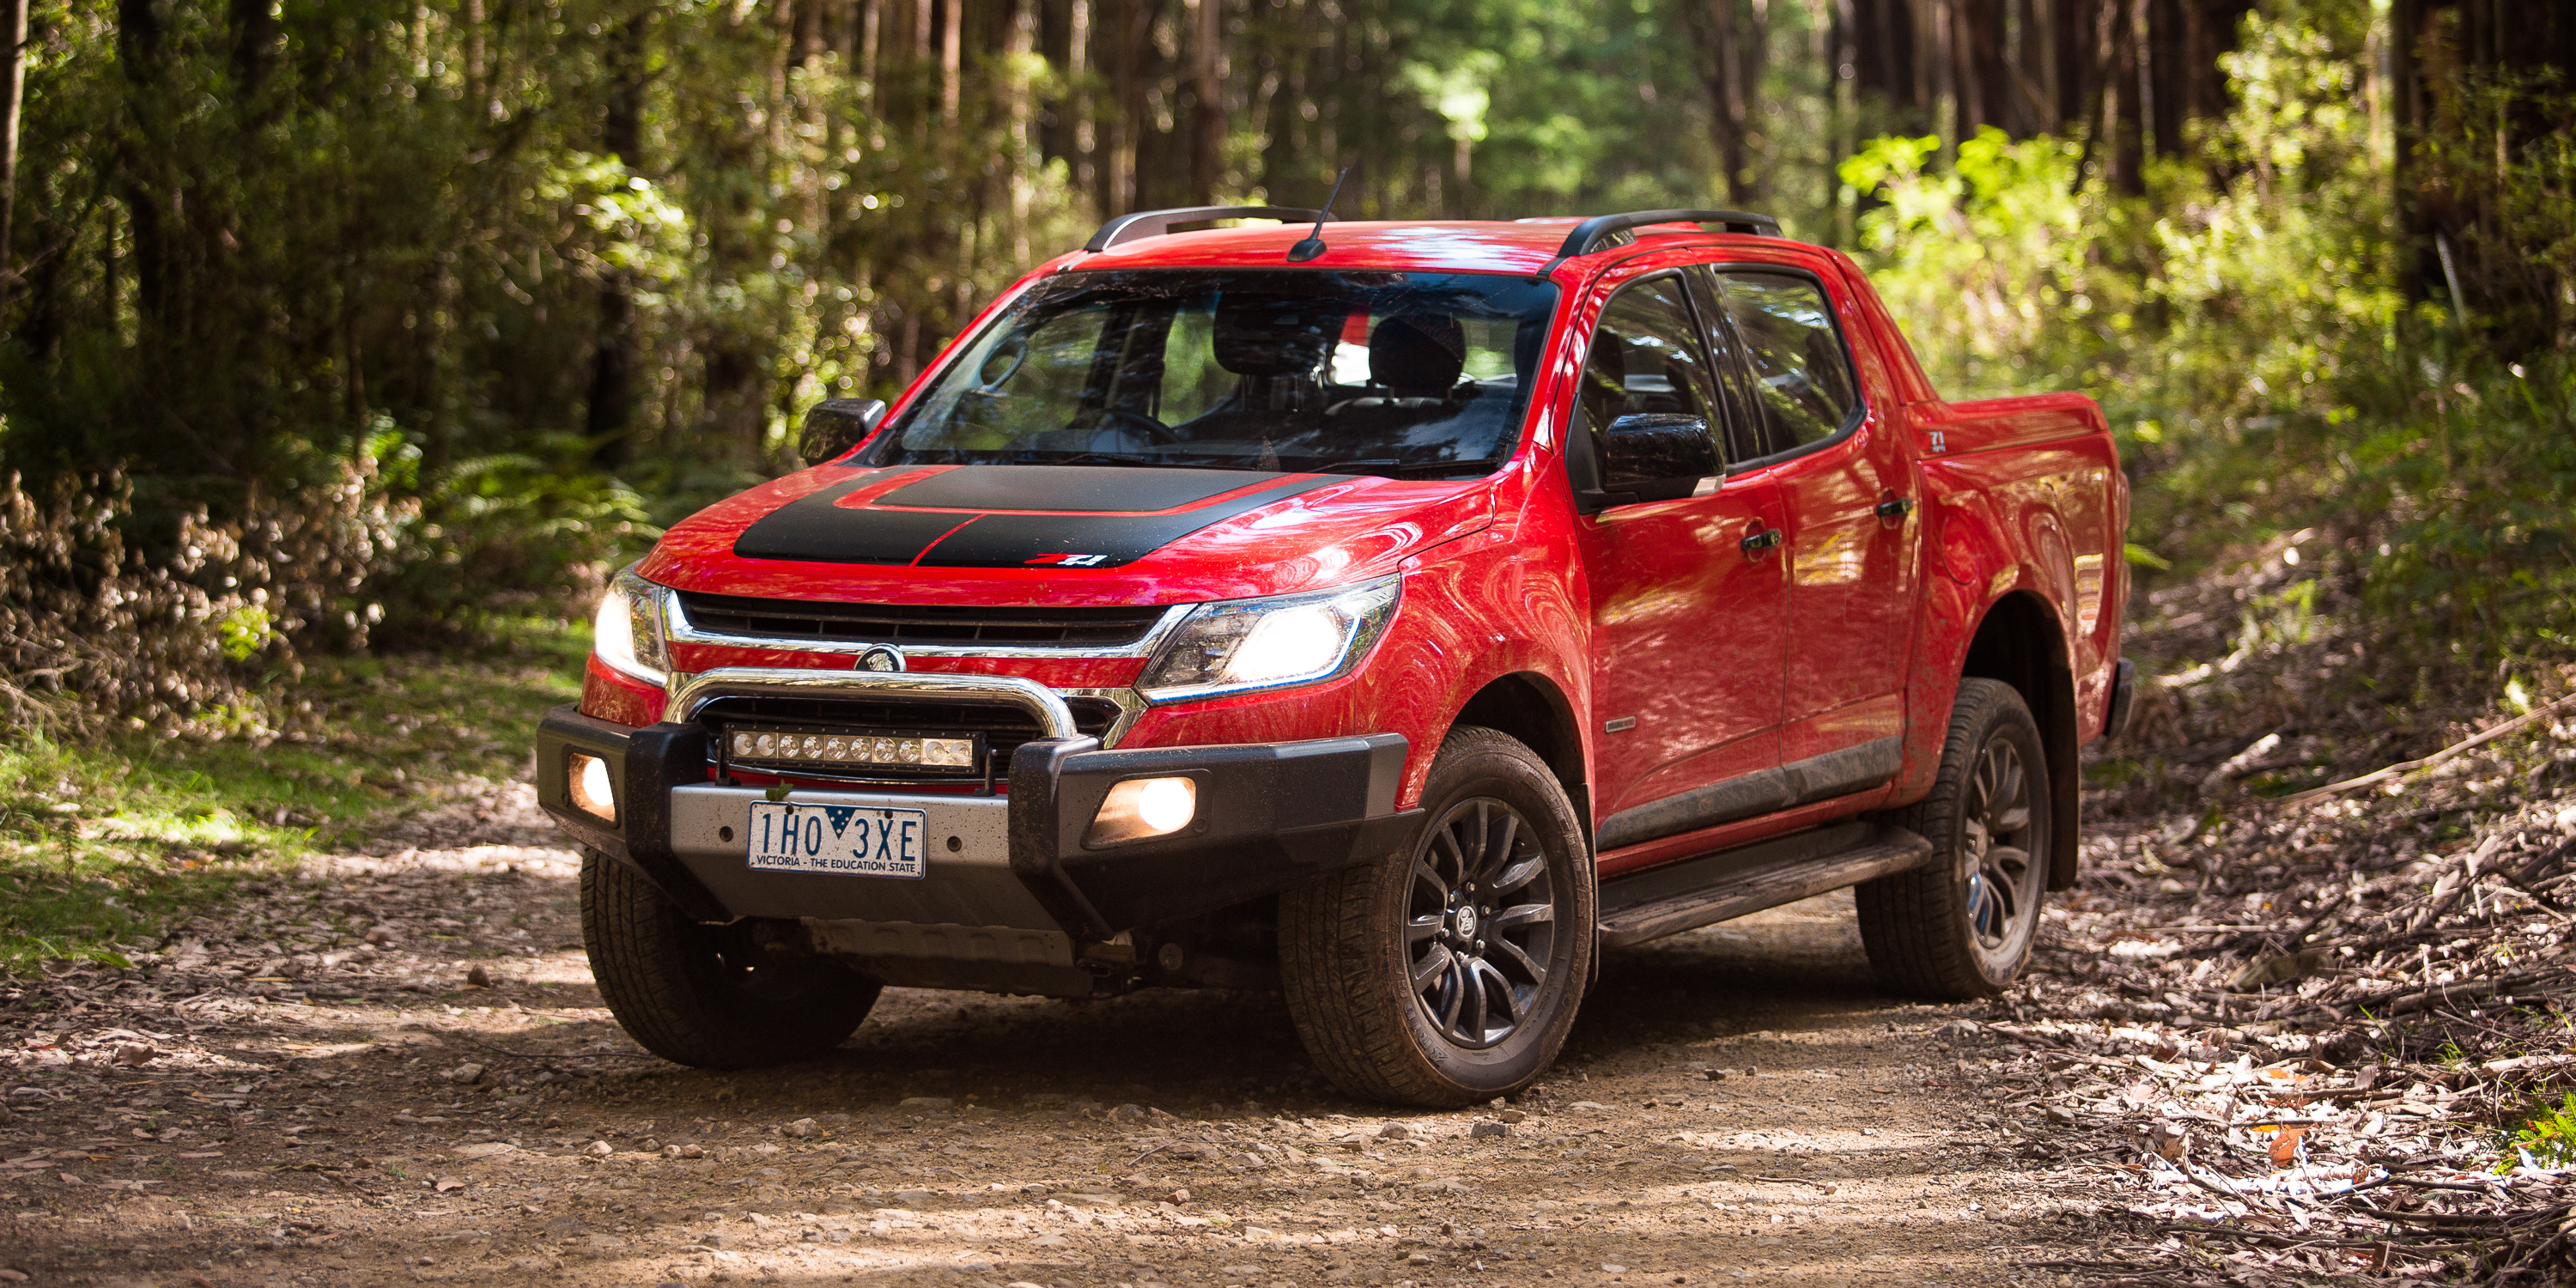 2017 holden colorado z71 review long term report one photos 1 of 49. Black Bedroom Furniture Sets. Home Design Ideas